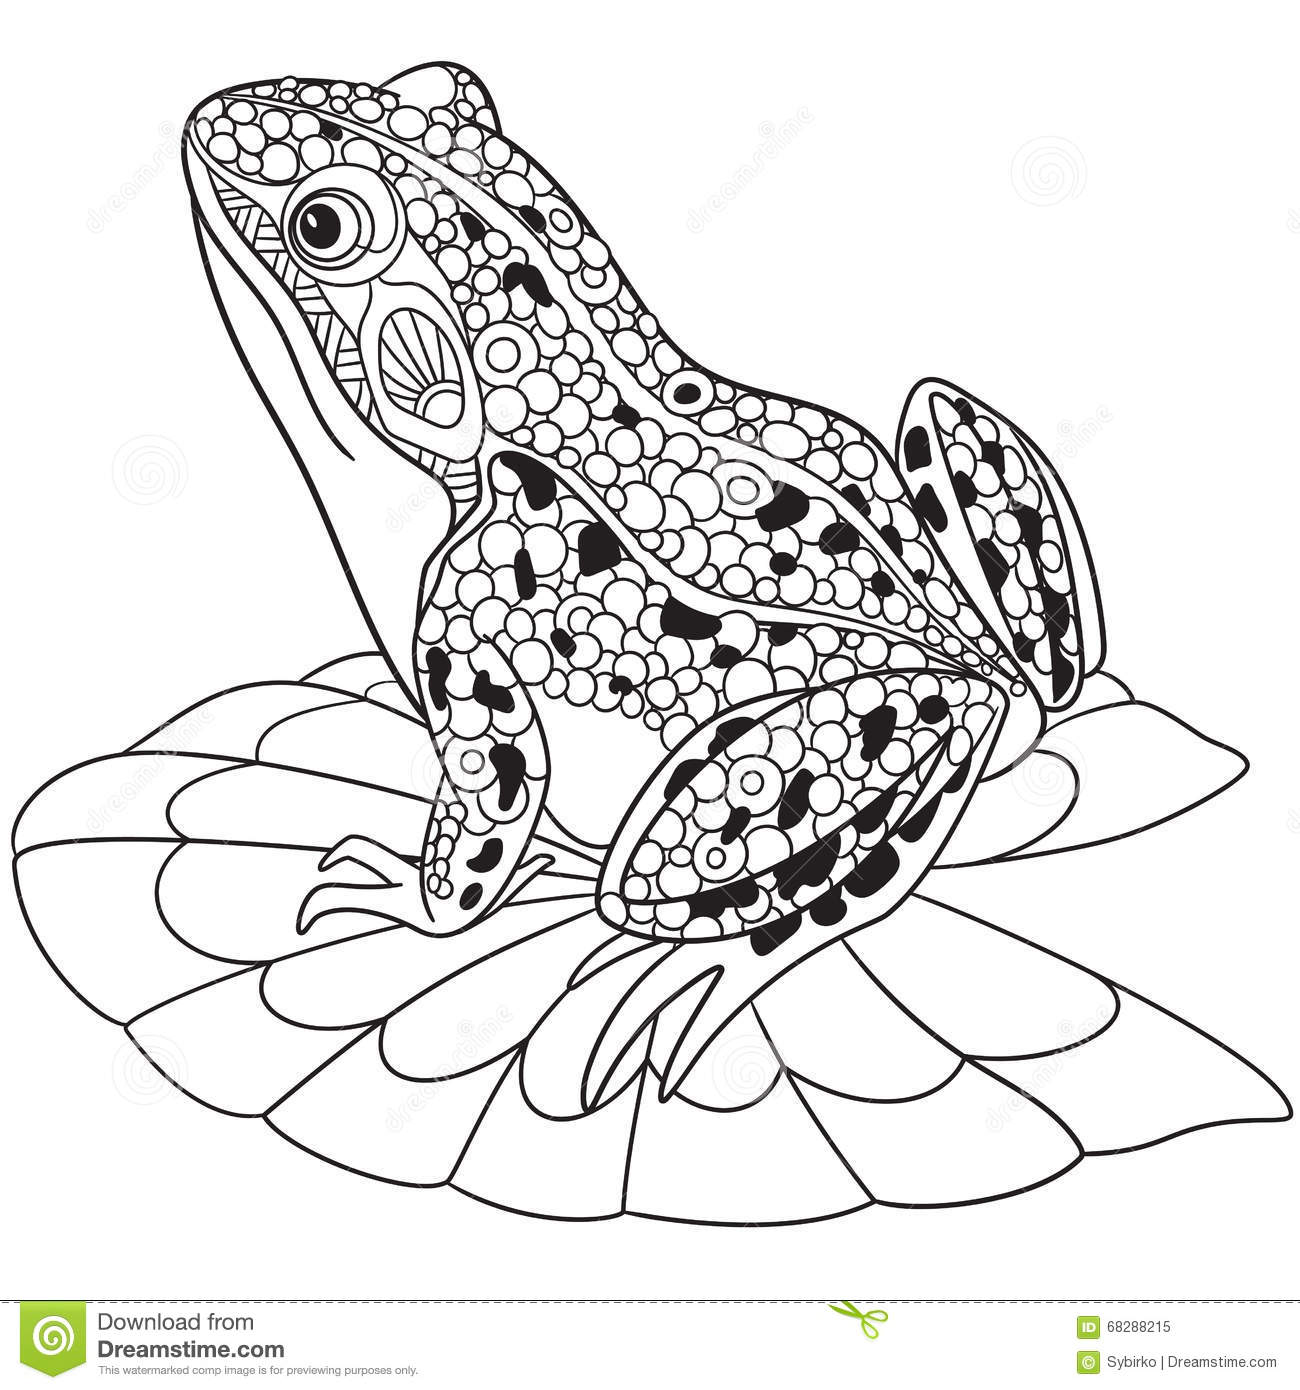 Adult Coloring Page Frog